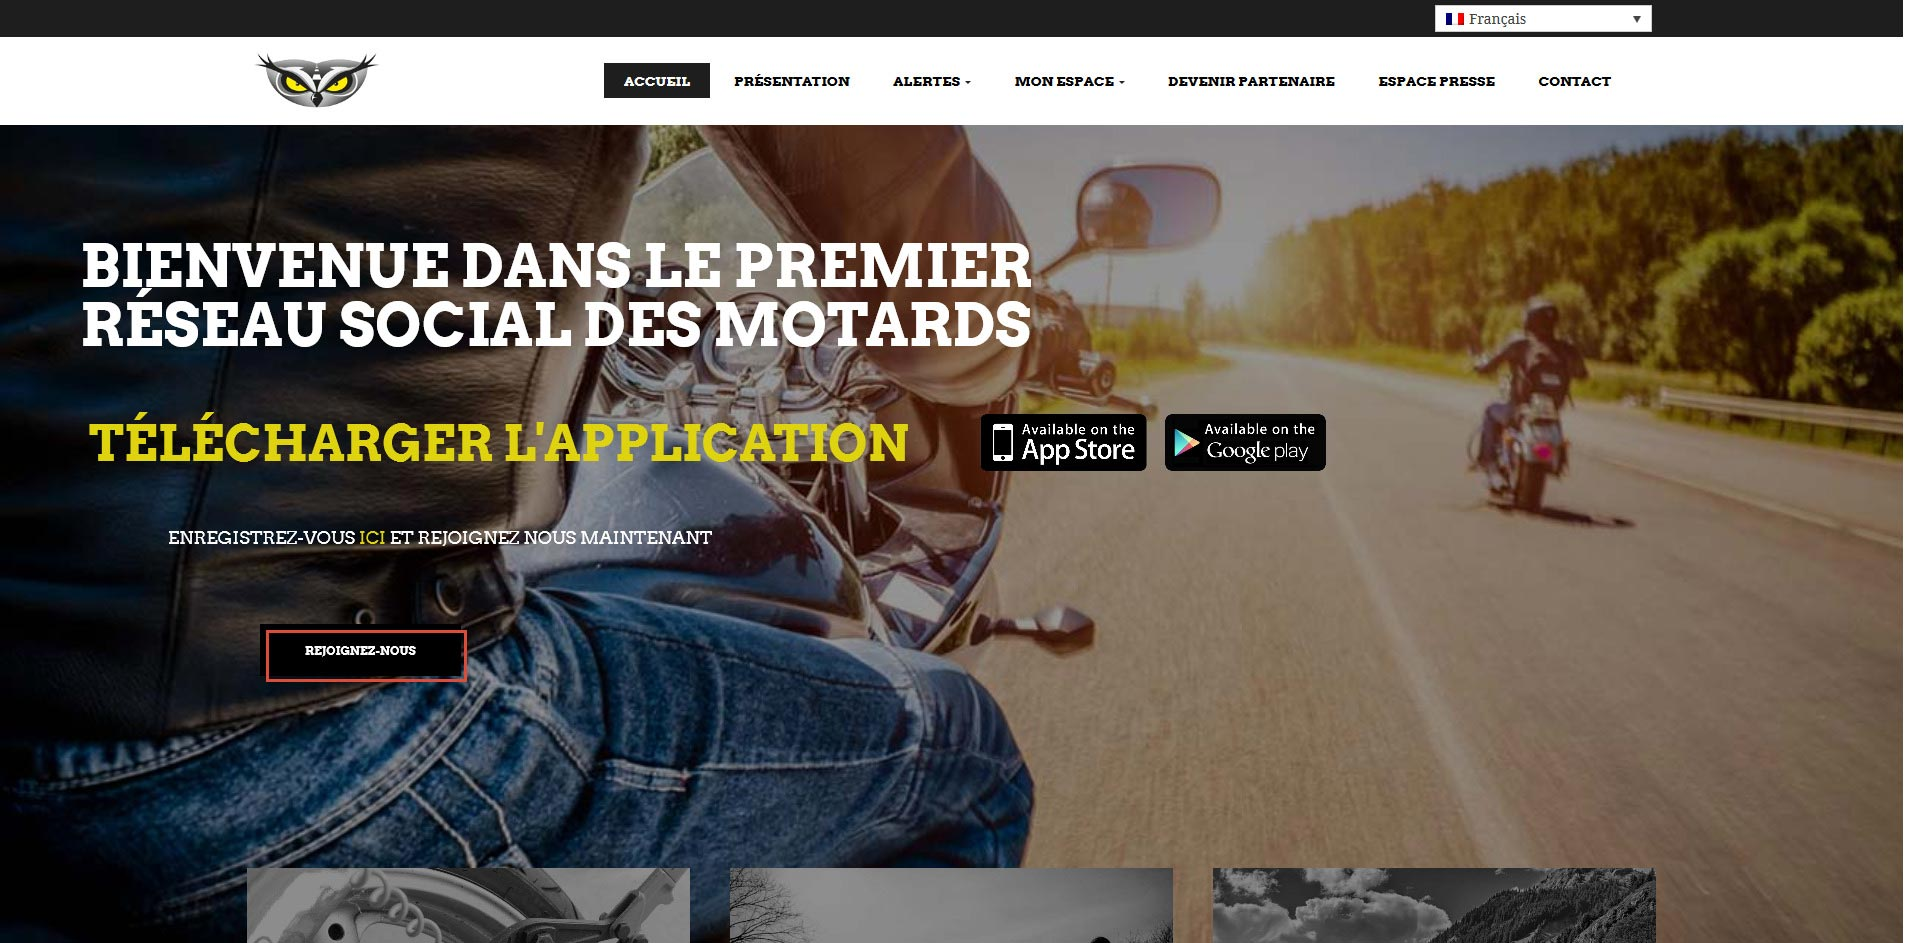 THALES IT - Réalisation sites Internet - Agence WEB - Moto Guard